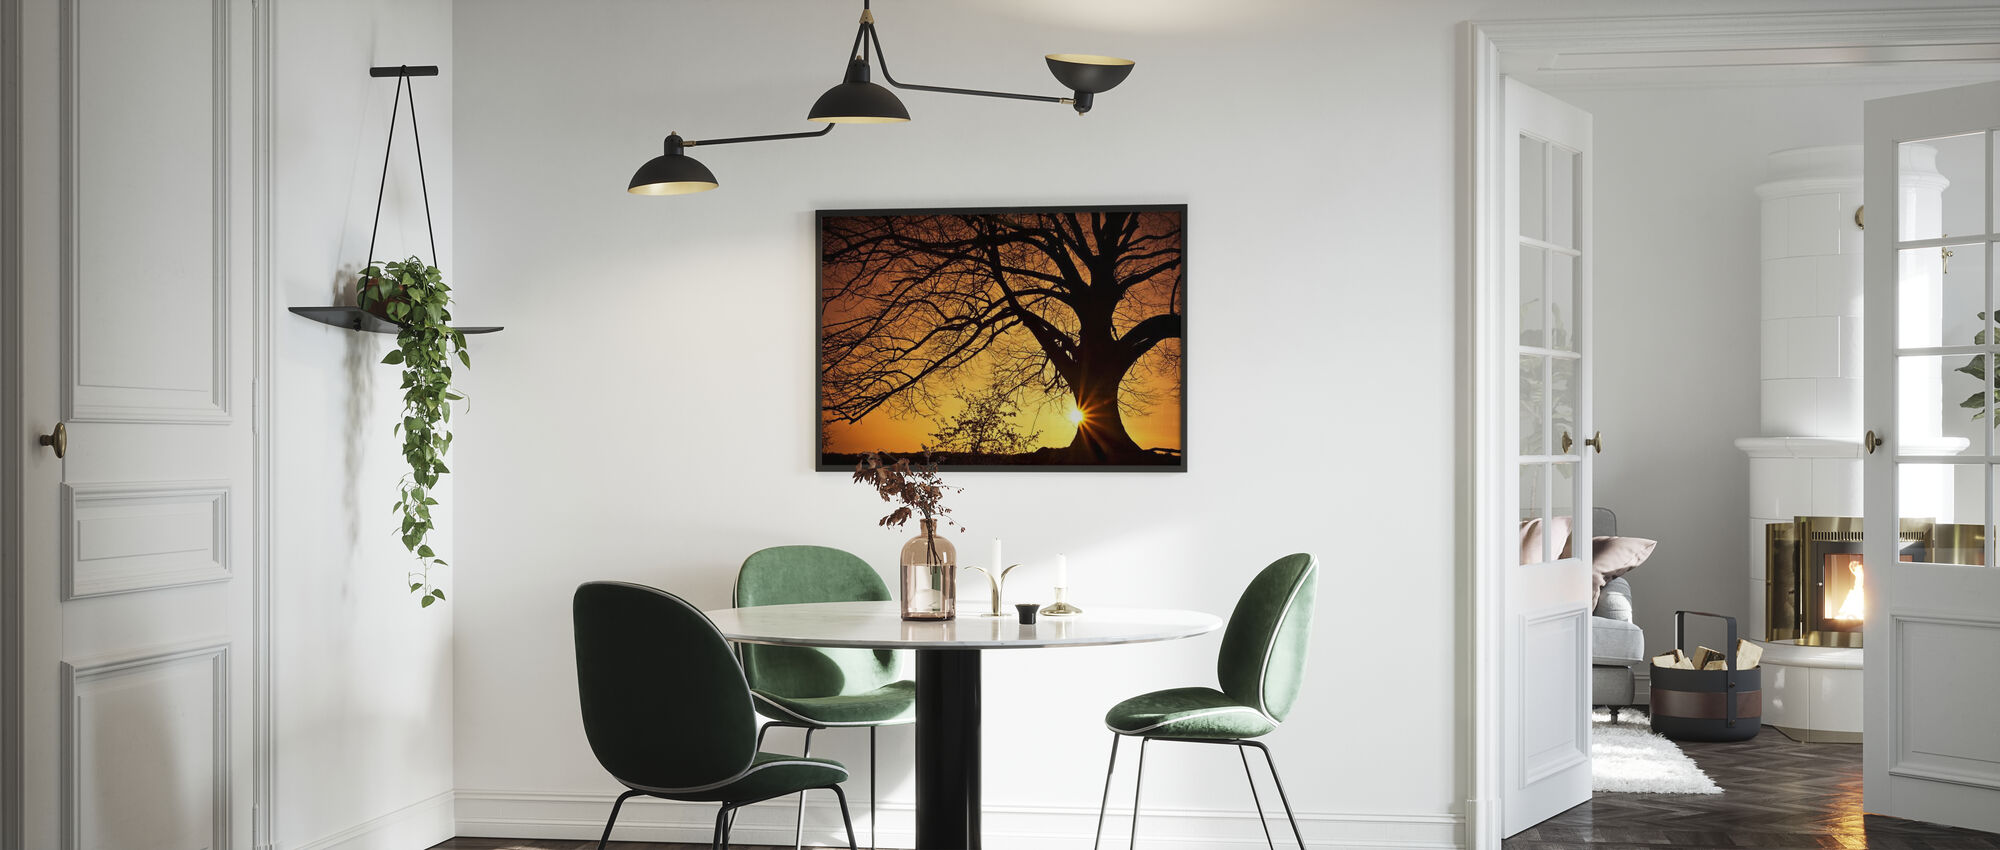 Silhouette of a Willow Tree in Sunset - Framed print - Kitchen